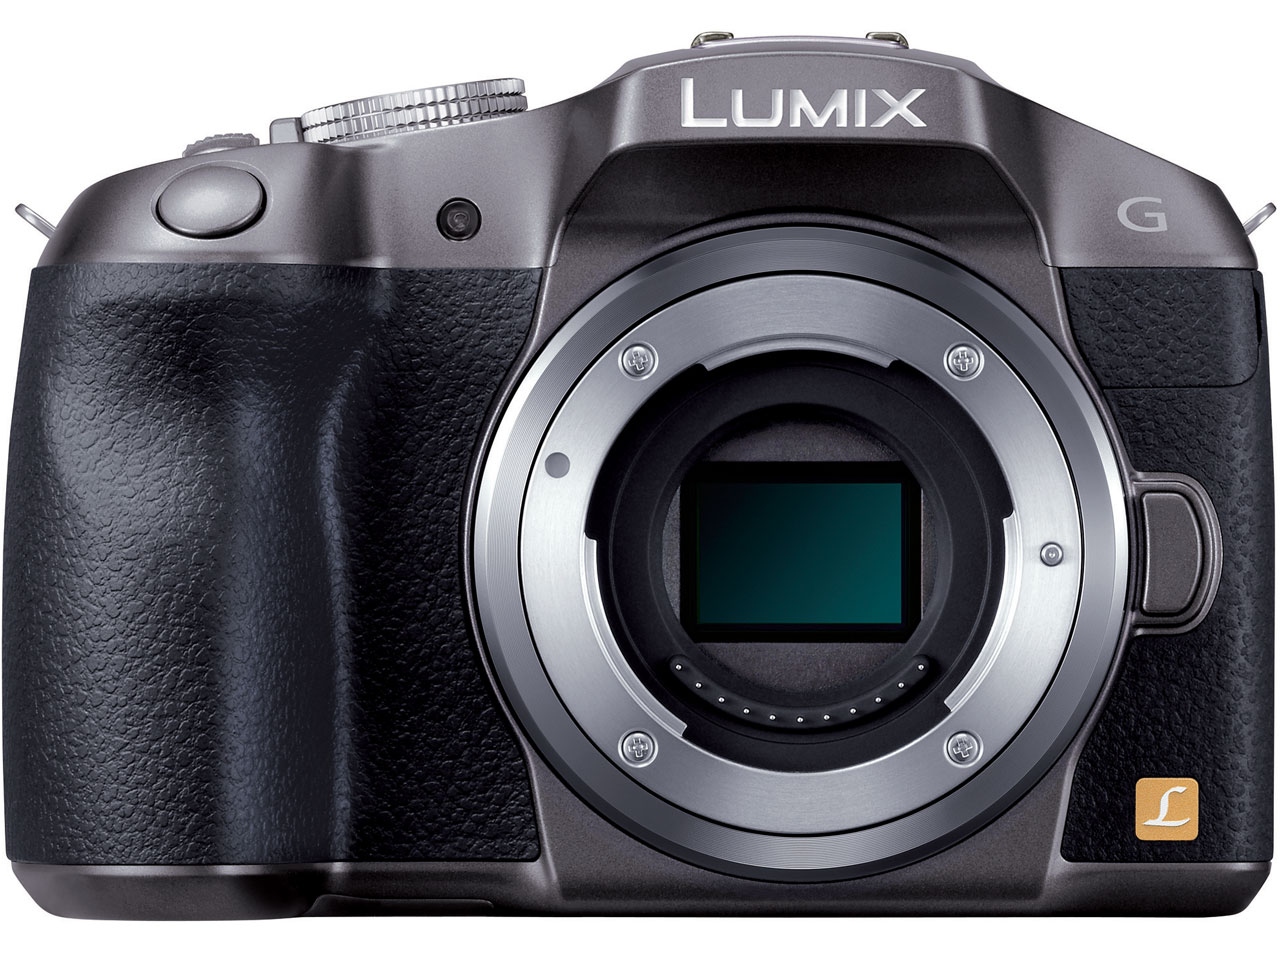 panasonic lumix dmc g6 digital mirrorless camera with lens bids from 1 ebay. Black Bedroom Furniture Sets. Home Design Ideas